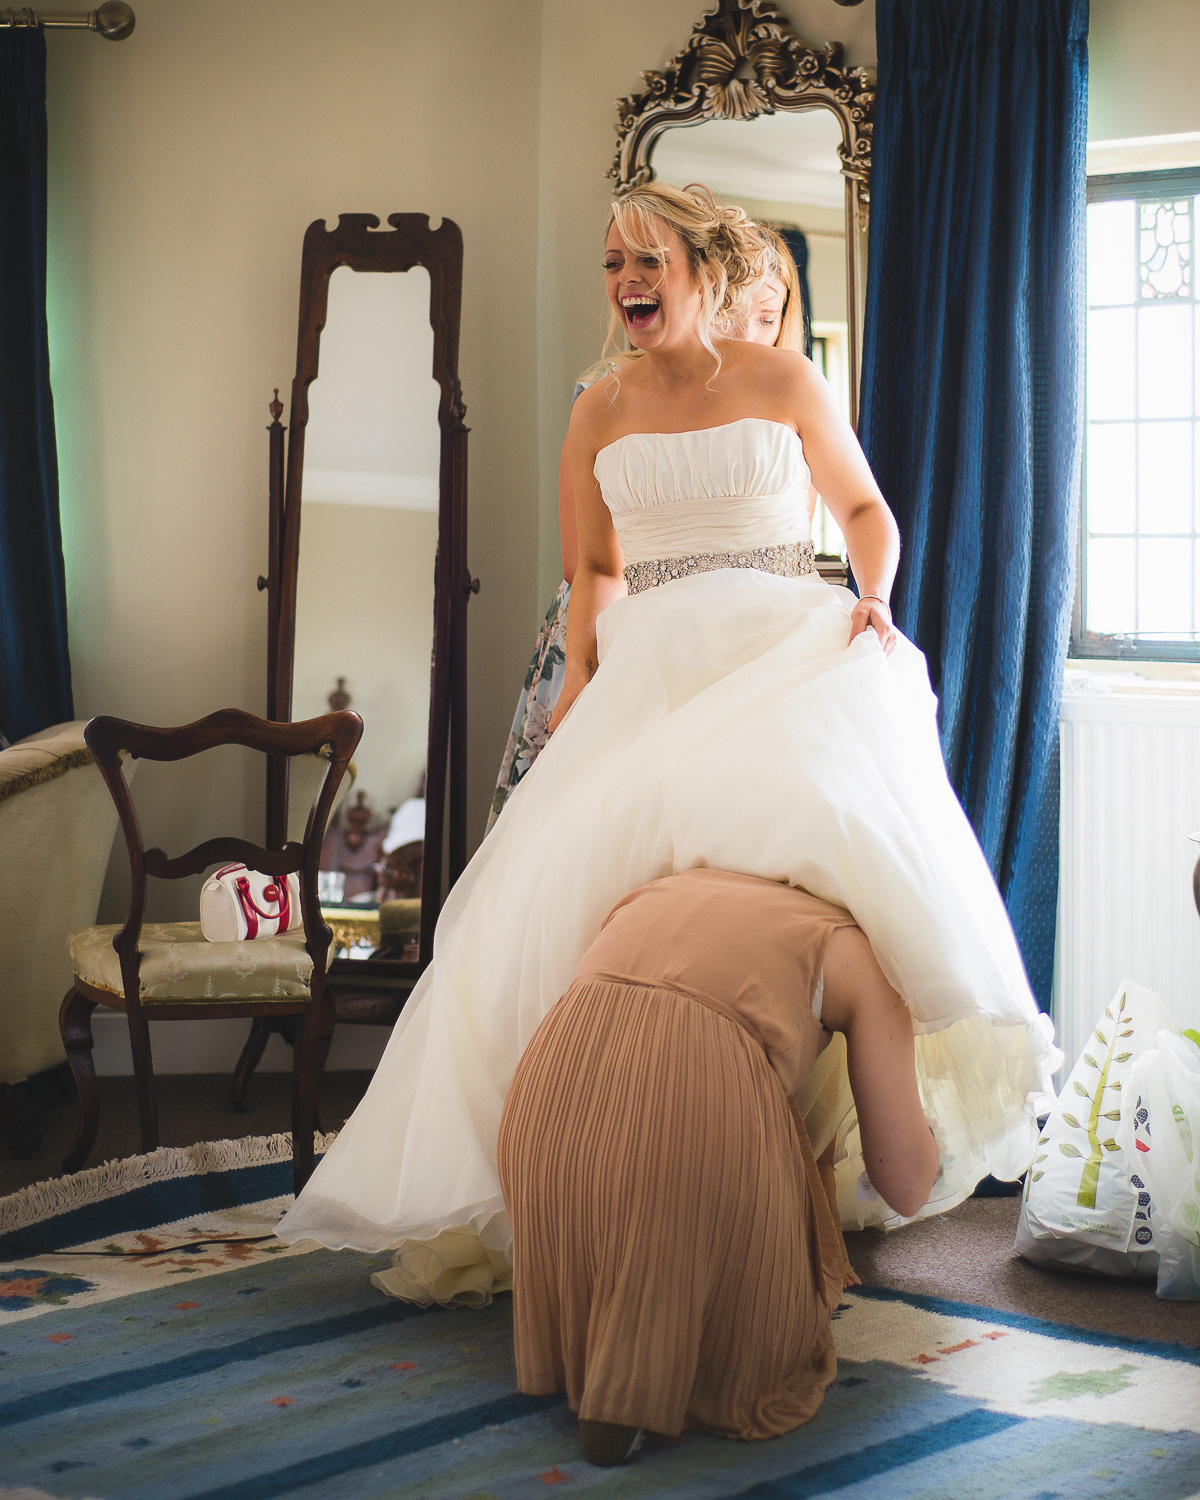 funny picture of bride getting dressed at walton castle clevedon